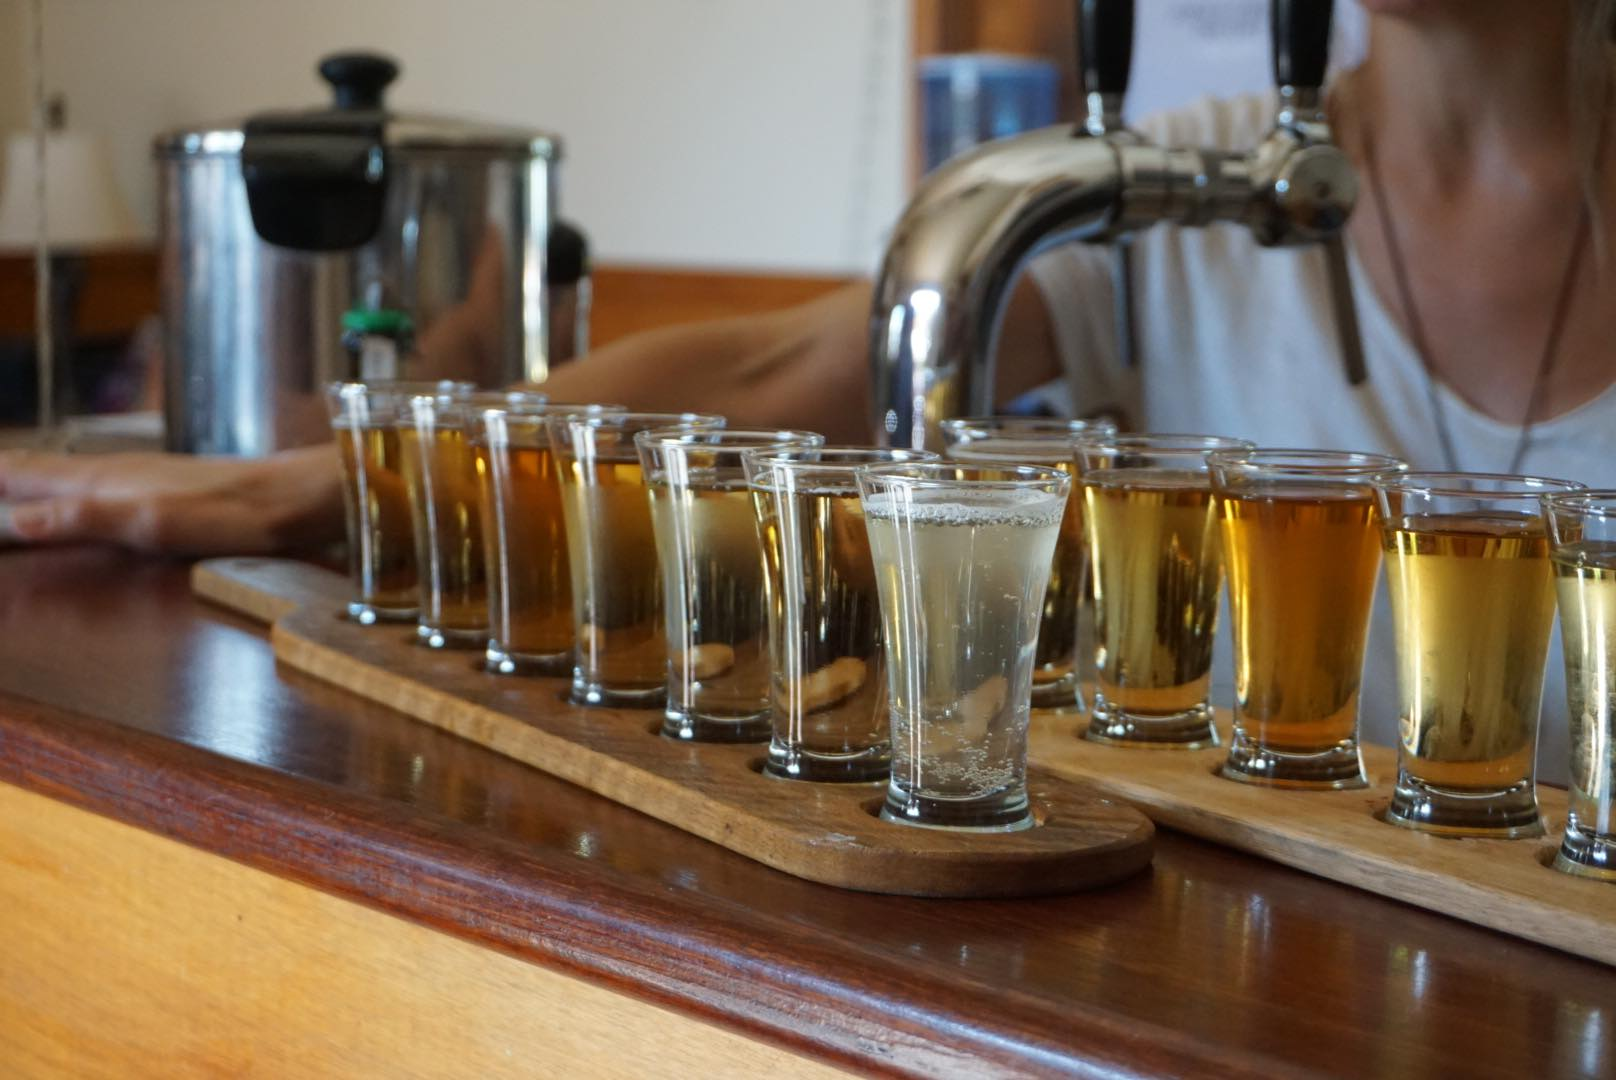 Delicious cider from Daylesford Cider Co